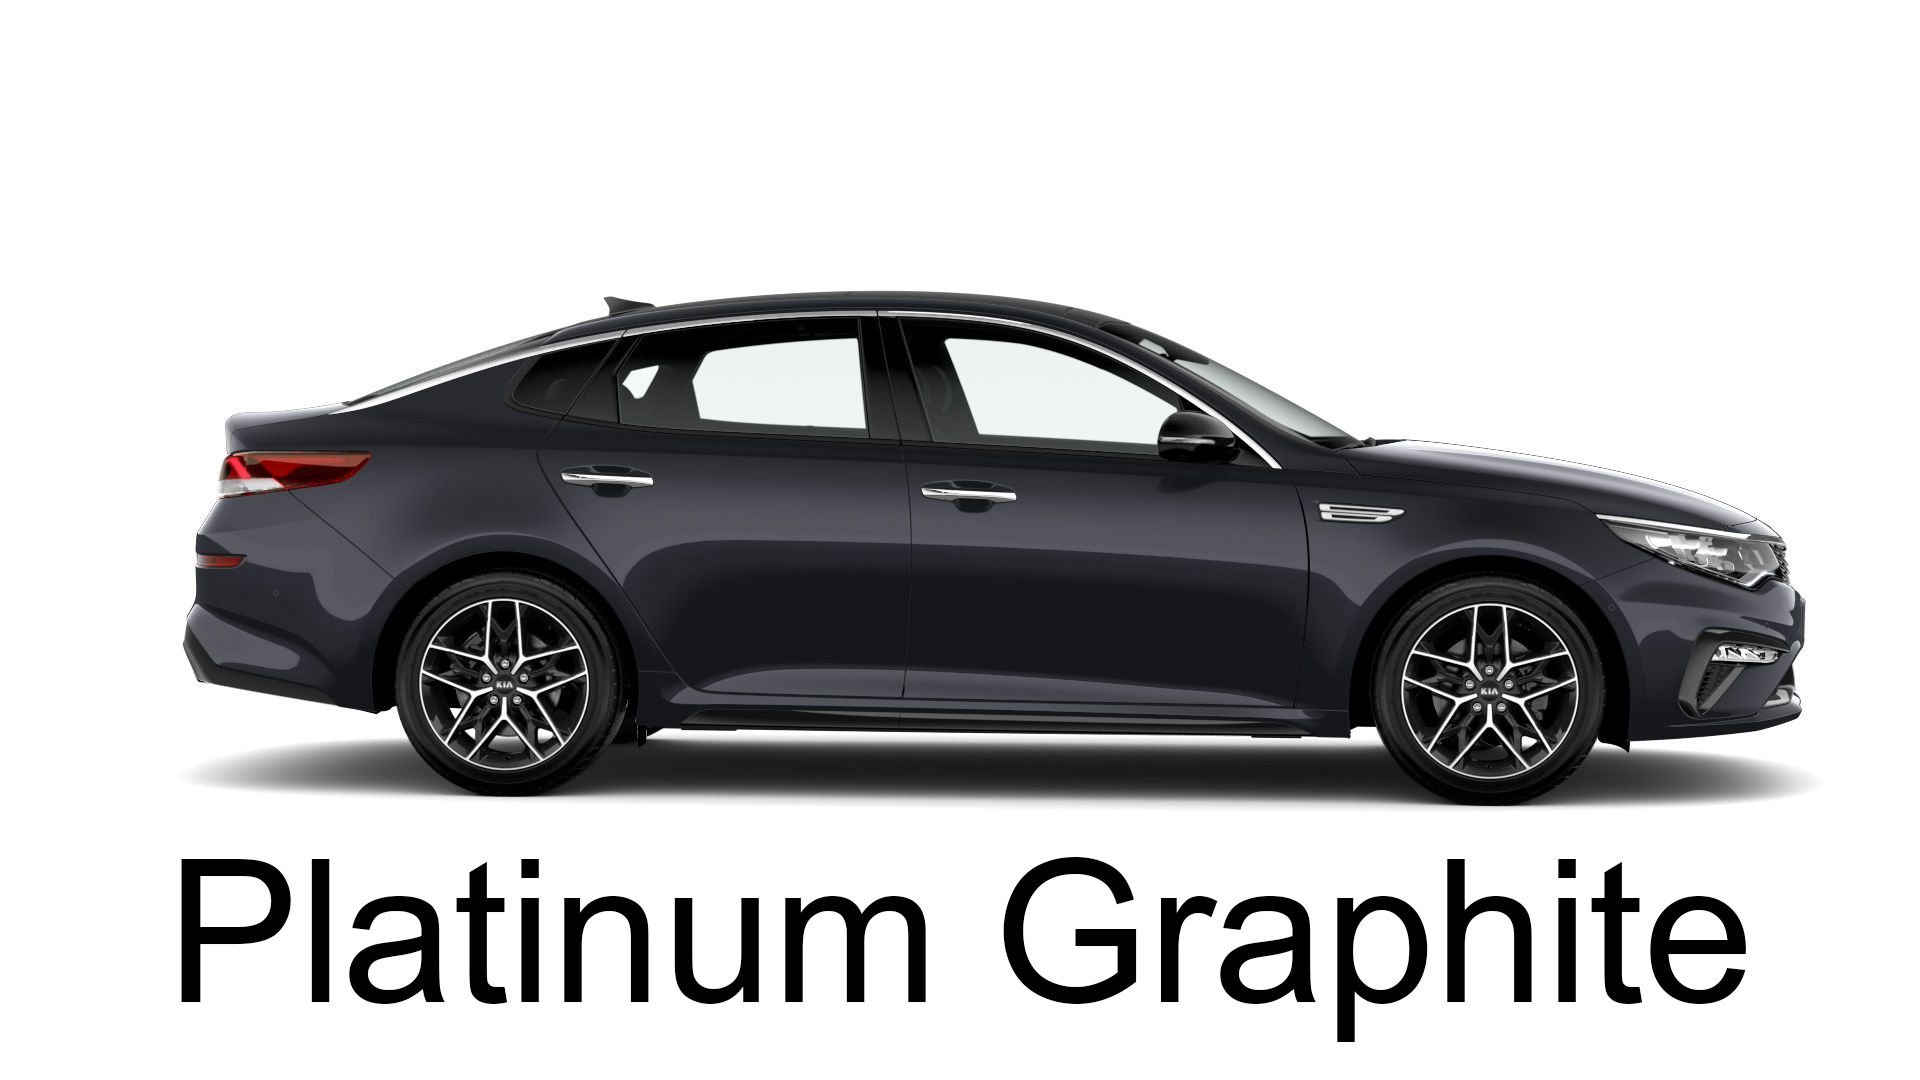 Optima Platinum Graphite